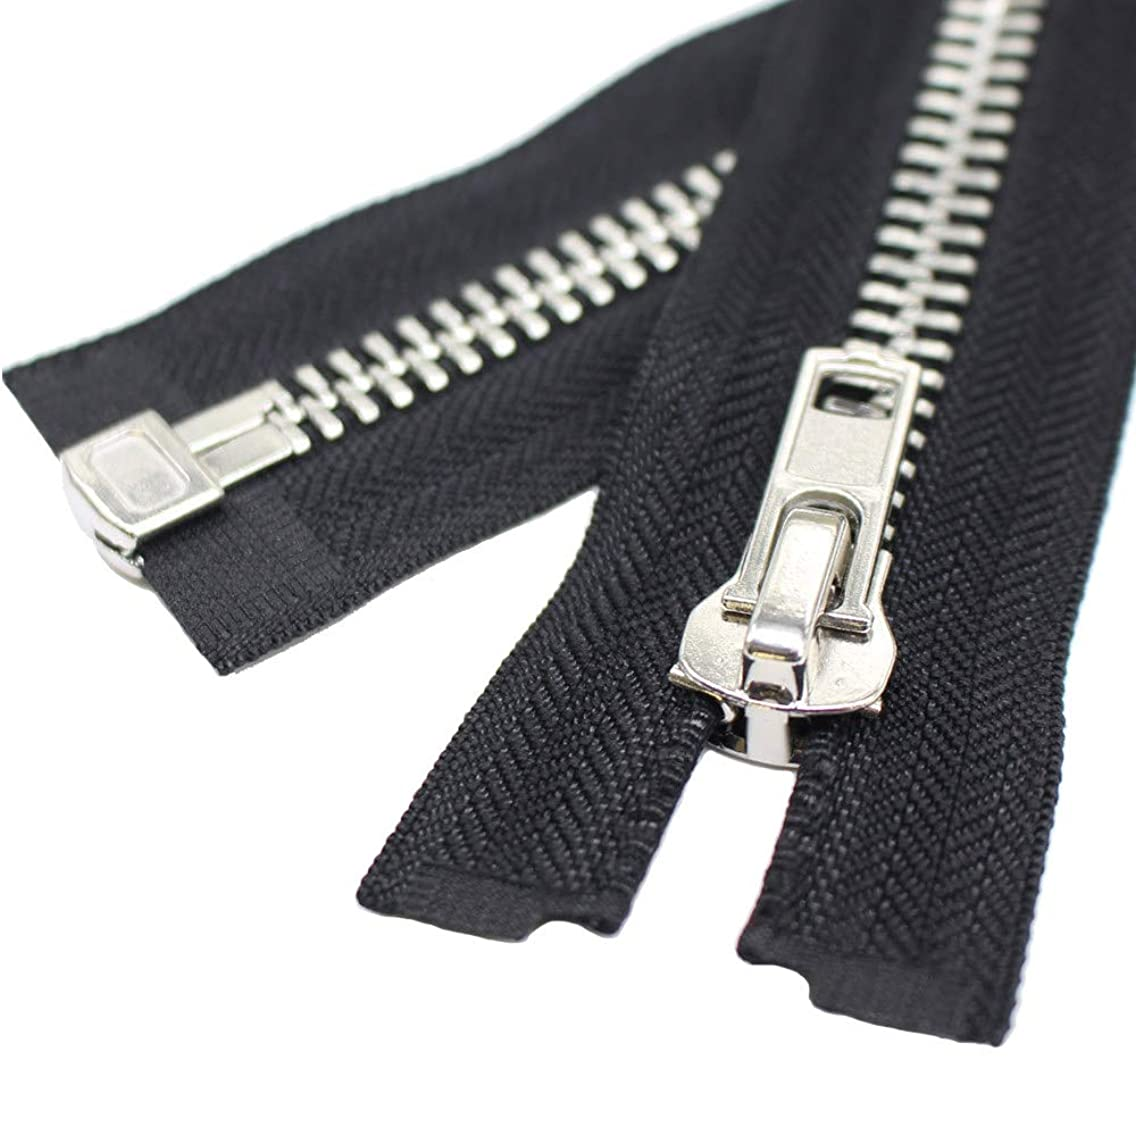 YaHoGa #10 26 Inch Silver Separating Jacket Zipper Large Metal Zipper Y-Teeth Black Heavy Duty Metal Zippers for Jackets Sewing Coats Crafts (26